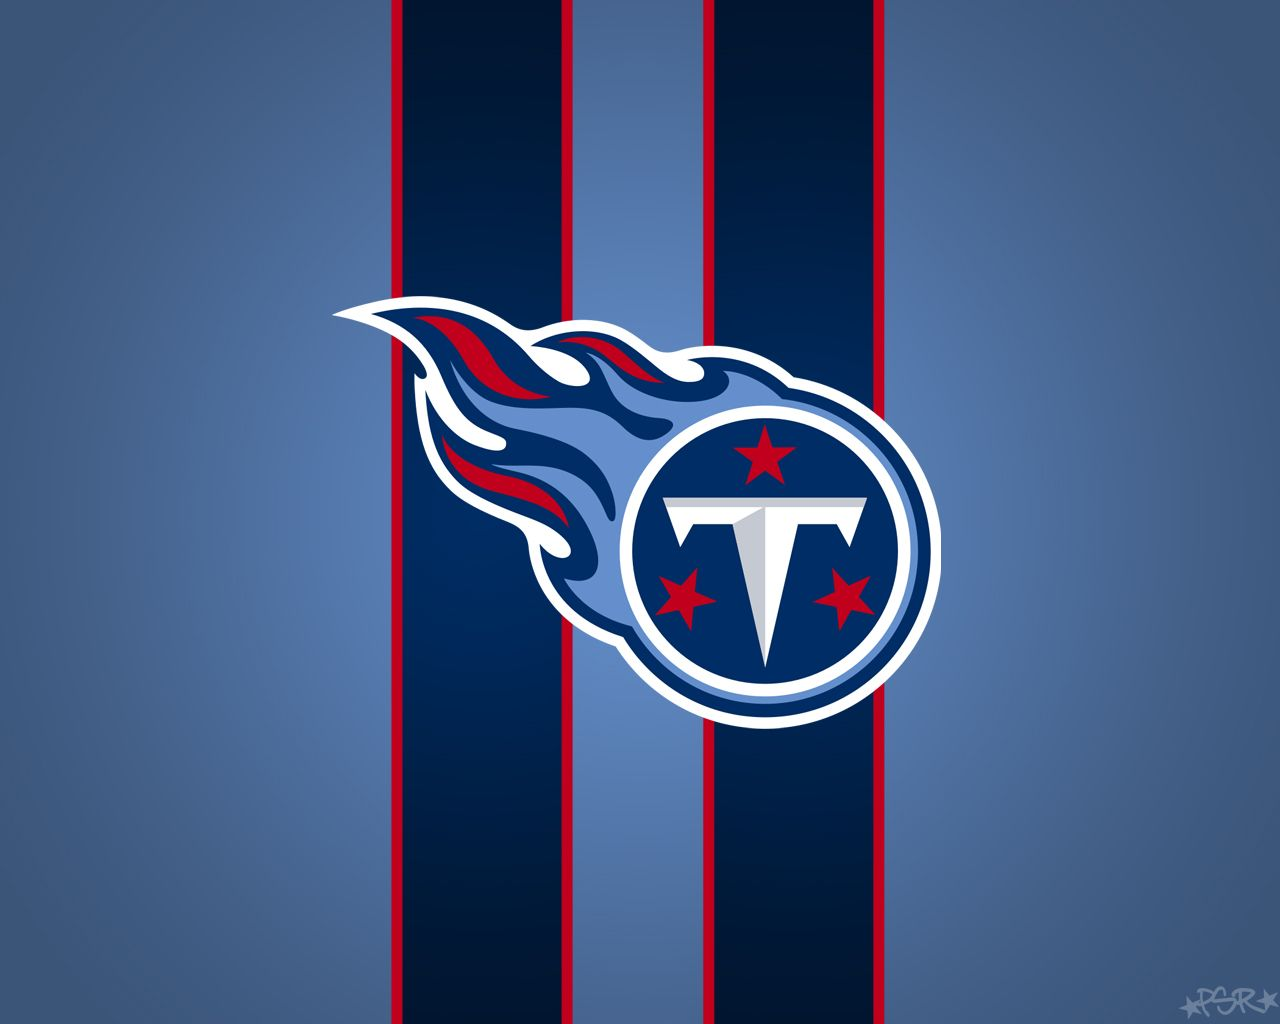 tennessee titans fans images - Google Search | Tennessee Titans ...